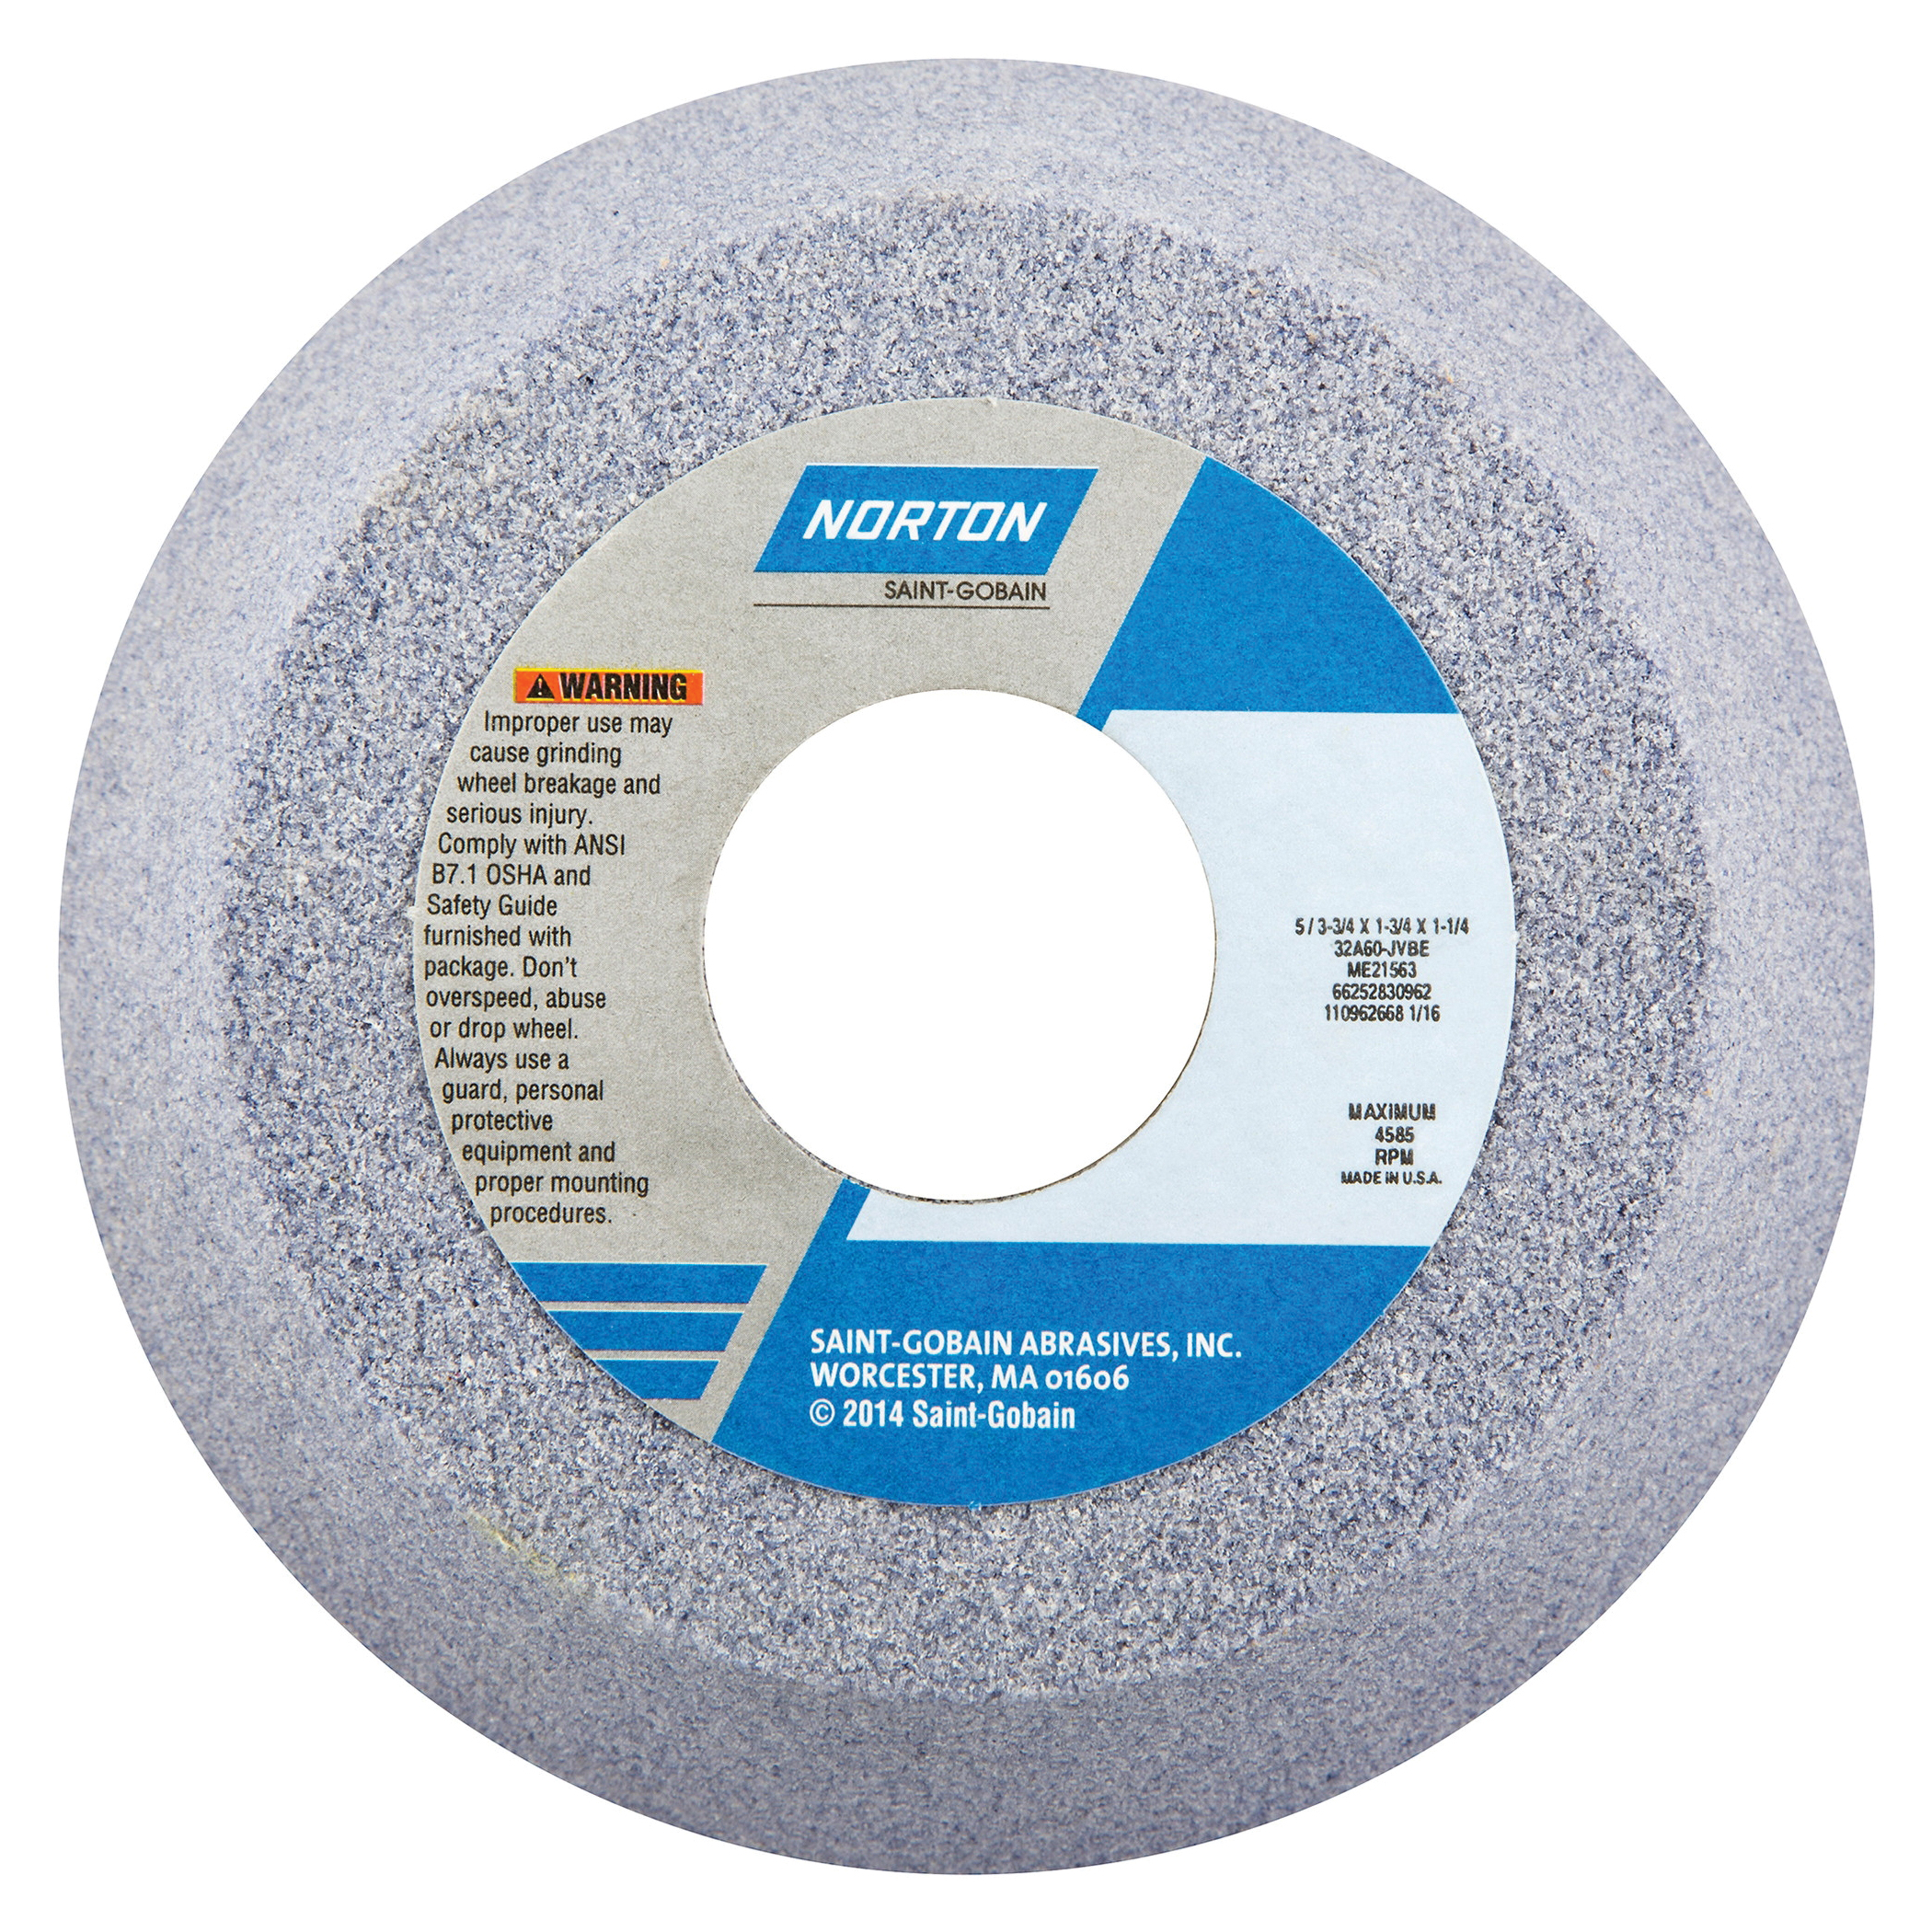 Norton® 66252830858 32A Toolroom Wheel, 5 in Dia x 1-3/4 in THK, 1-1/4 in Center Hole, 46 Grit, Aluminum Oxide Abrasive